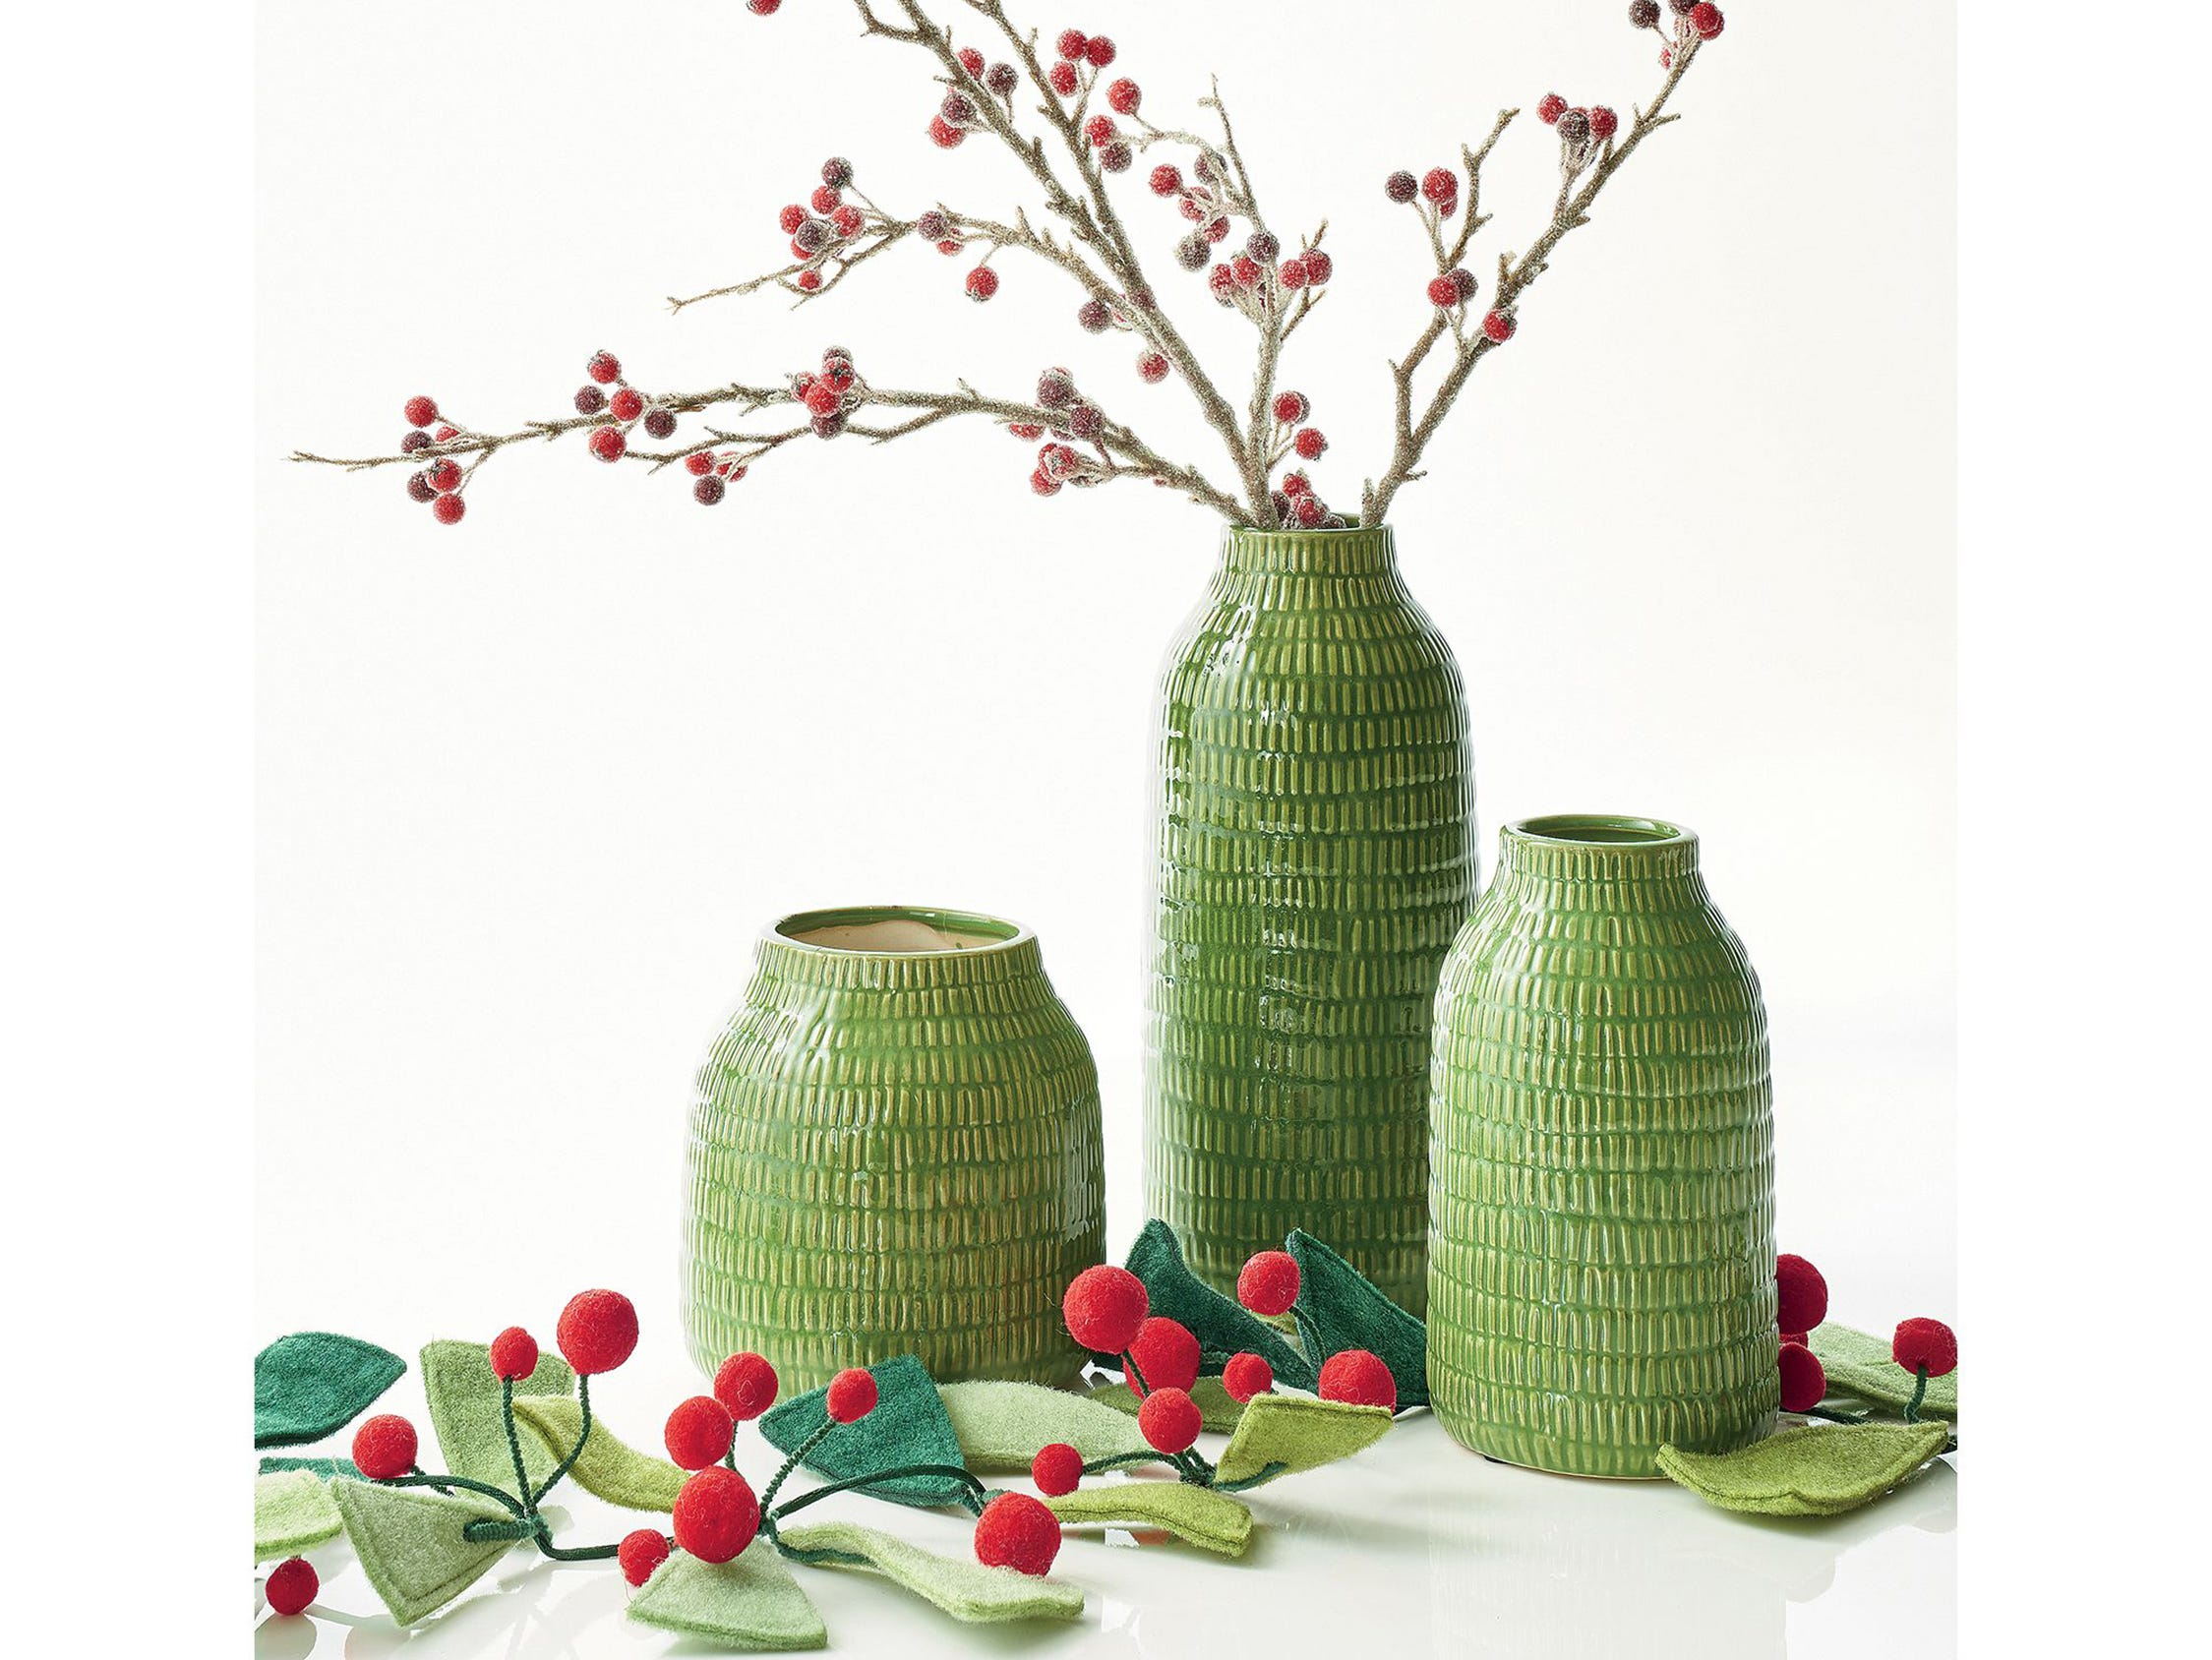 """Simple felt triangle """"needles"""" in two shades of green with clusters of red pompom berries form a handcrafted garland that is part of an attractive tablescape, with textured glazed embossed dash stoneware vases, one holding a berry branch. All are from Crate and Barrel."""